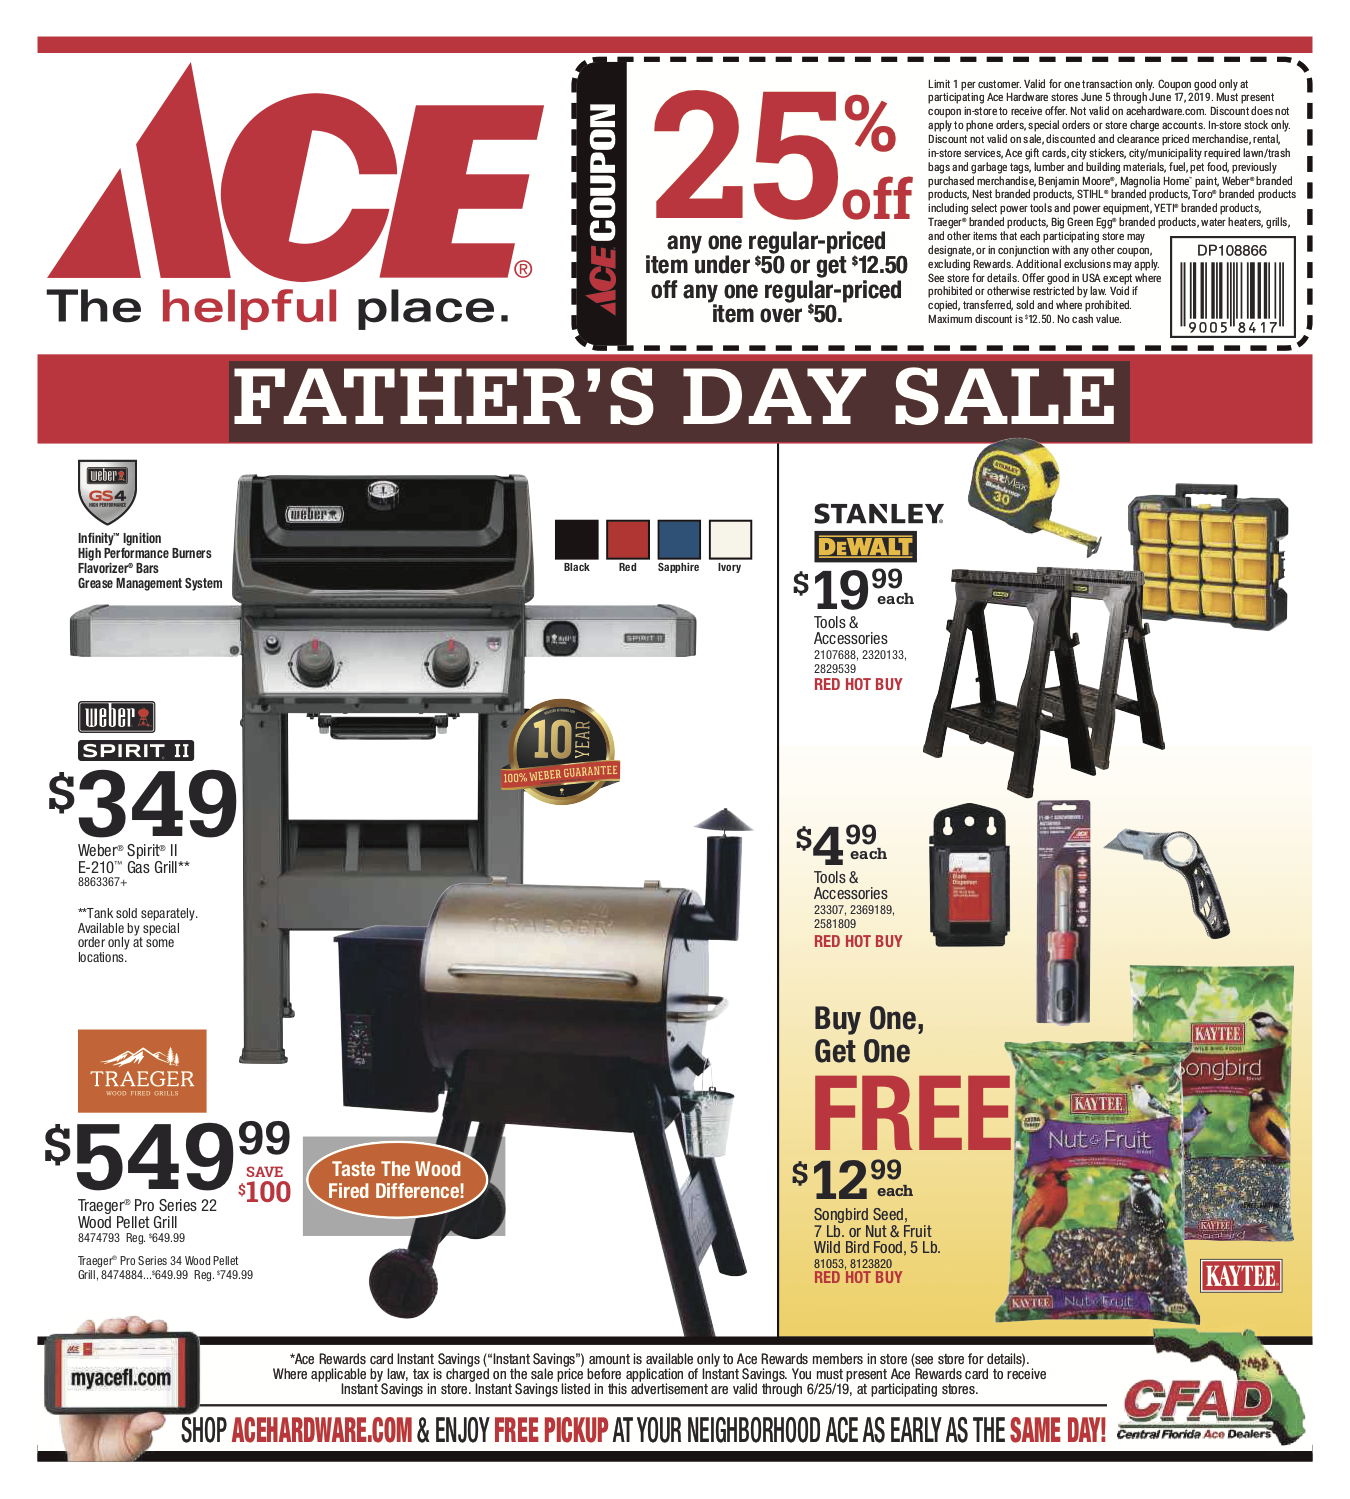 June's Father's Day Sale